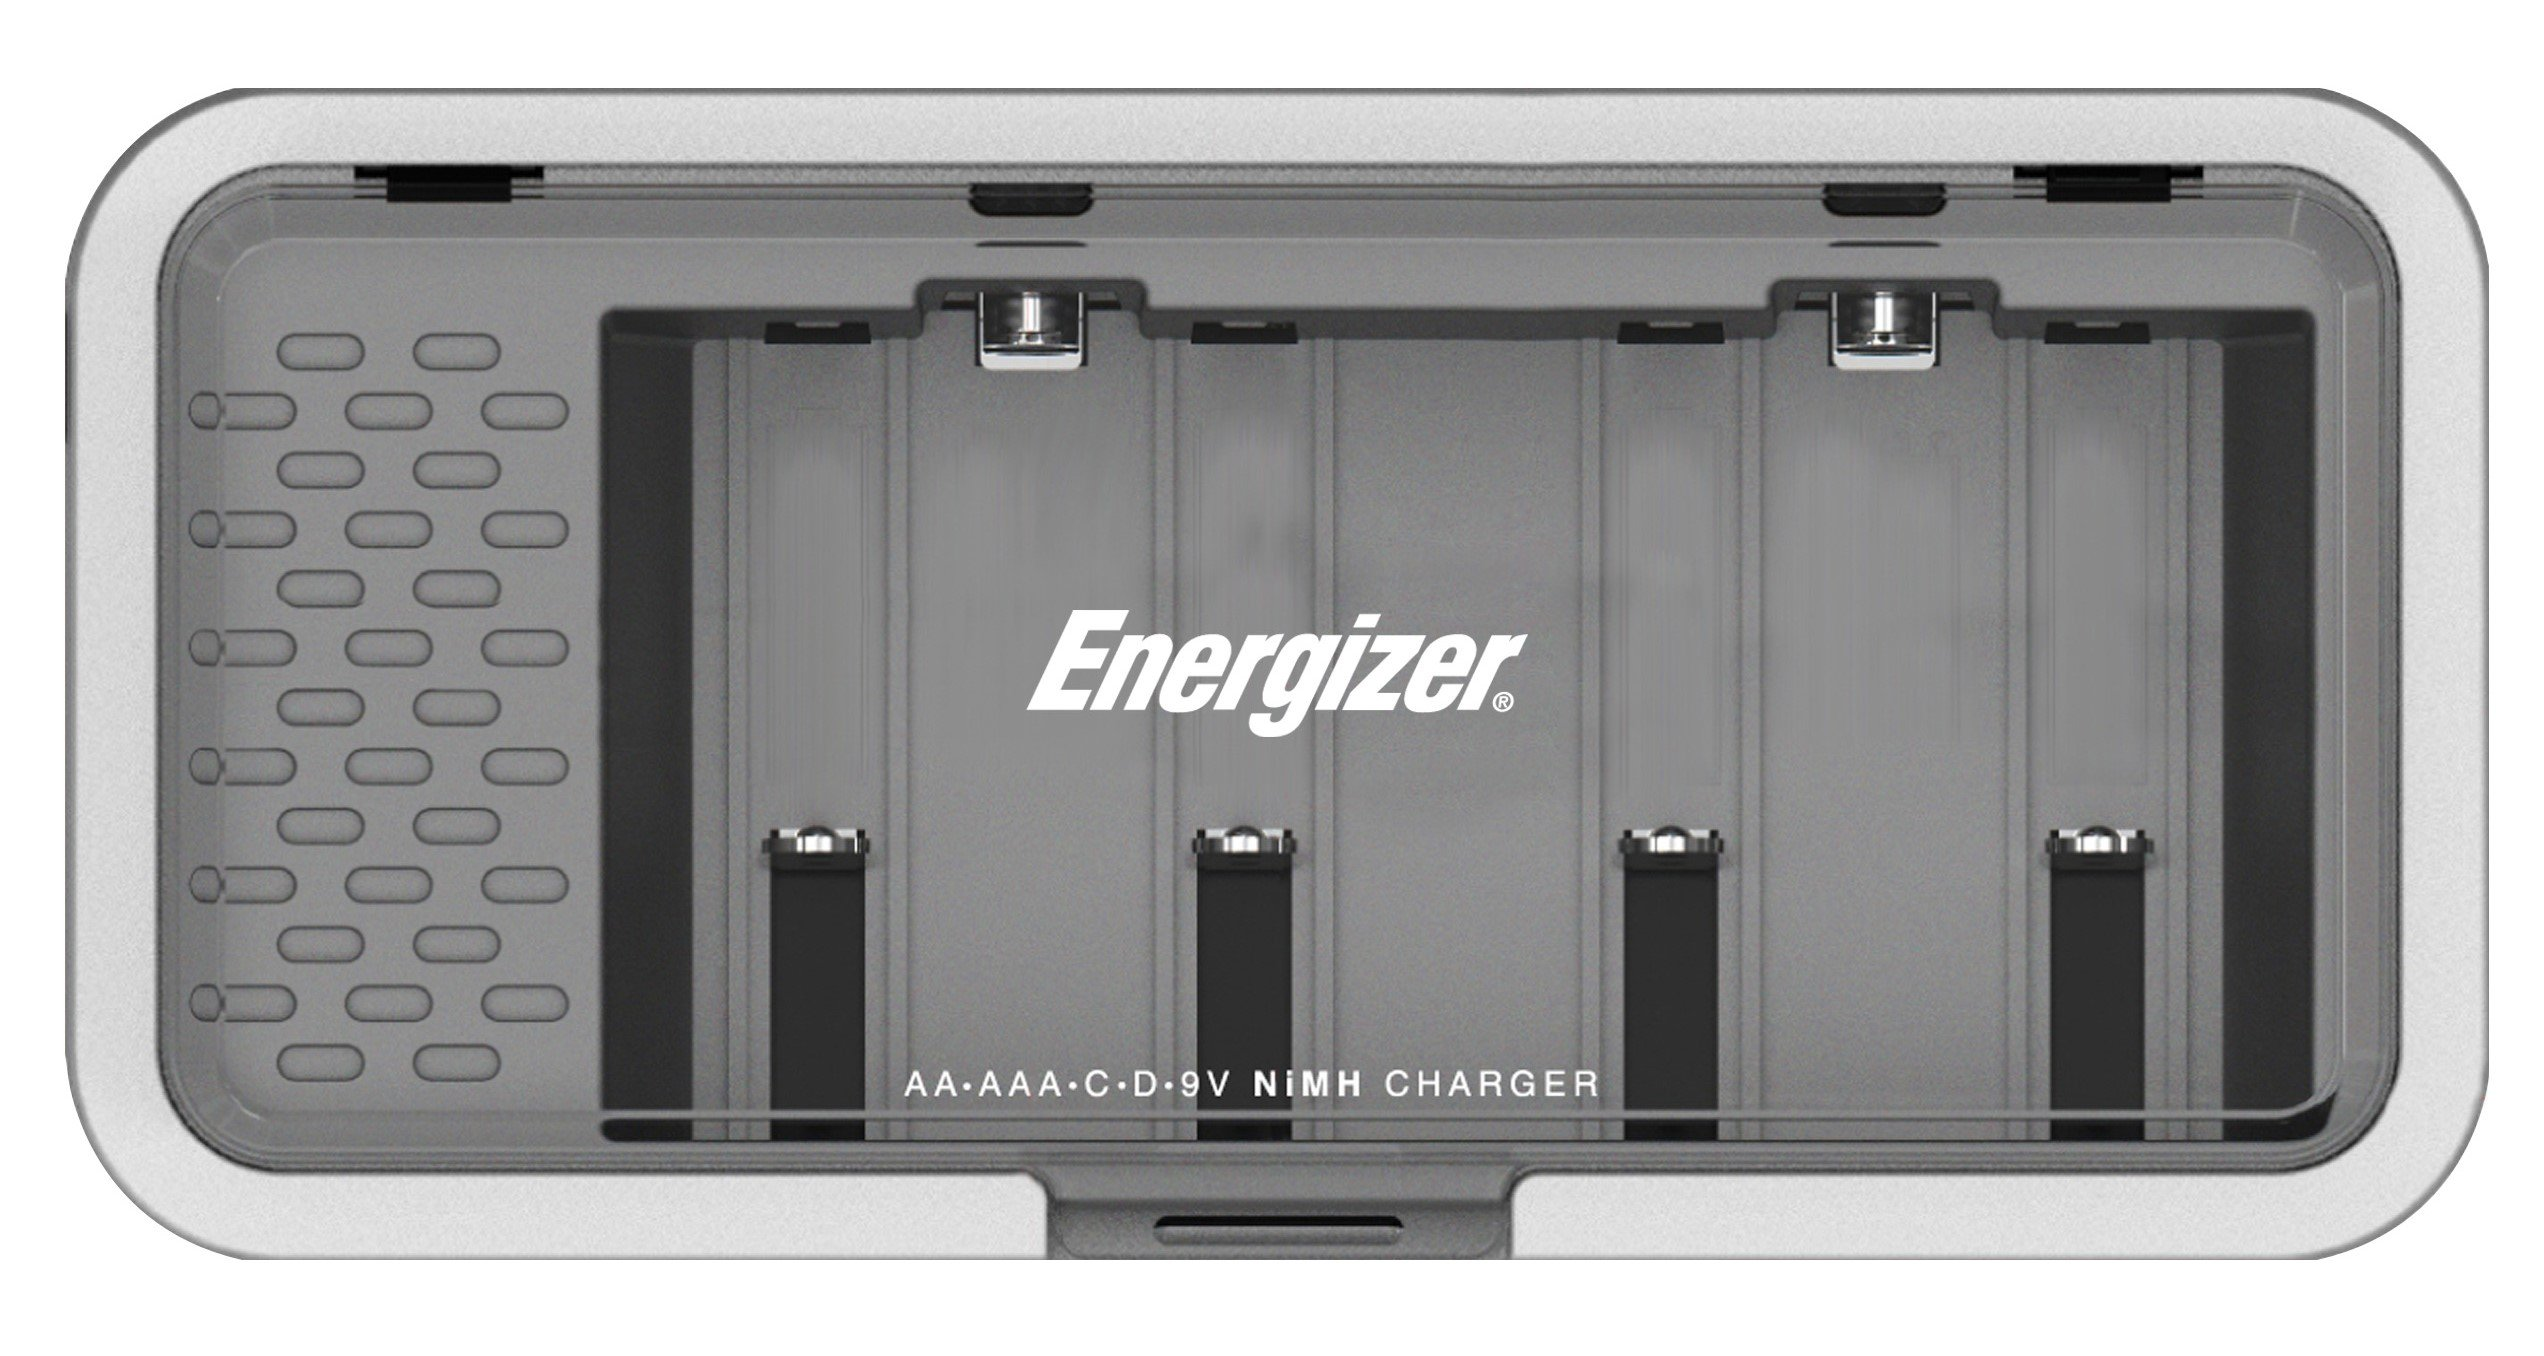 Amazon Energizer Recharge Universal Charger charges 8 AA AAA 4 C D or 1 9V NiMH Batteries Health & Personal Care